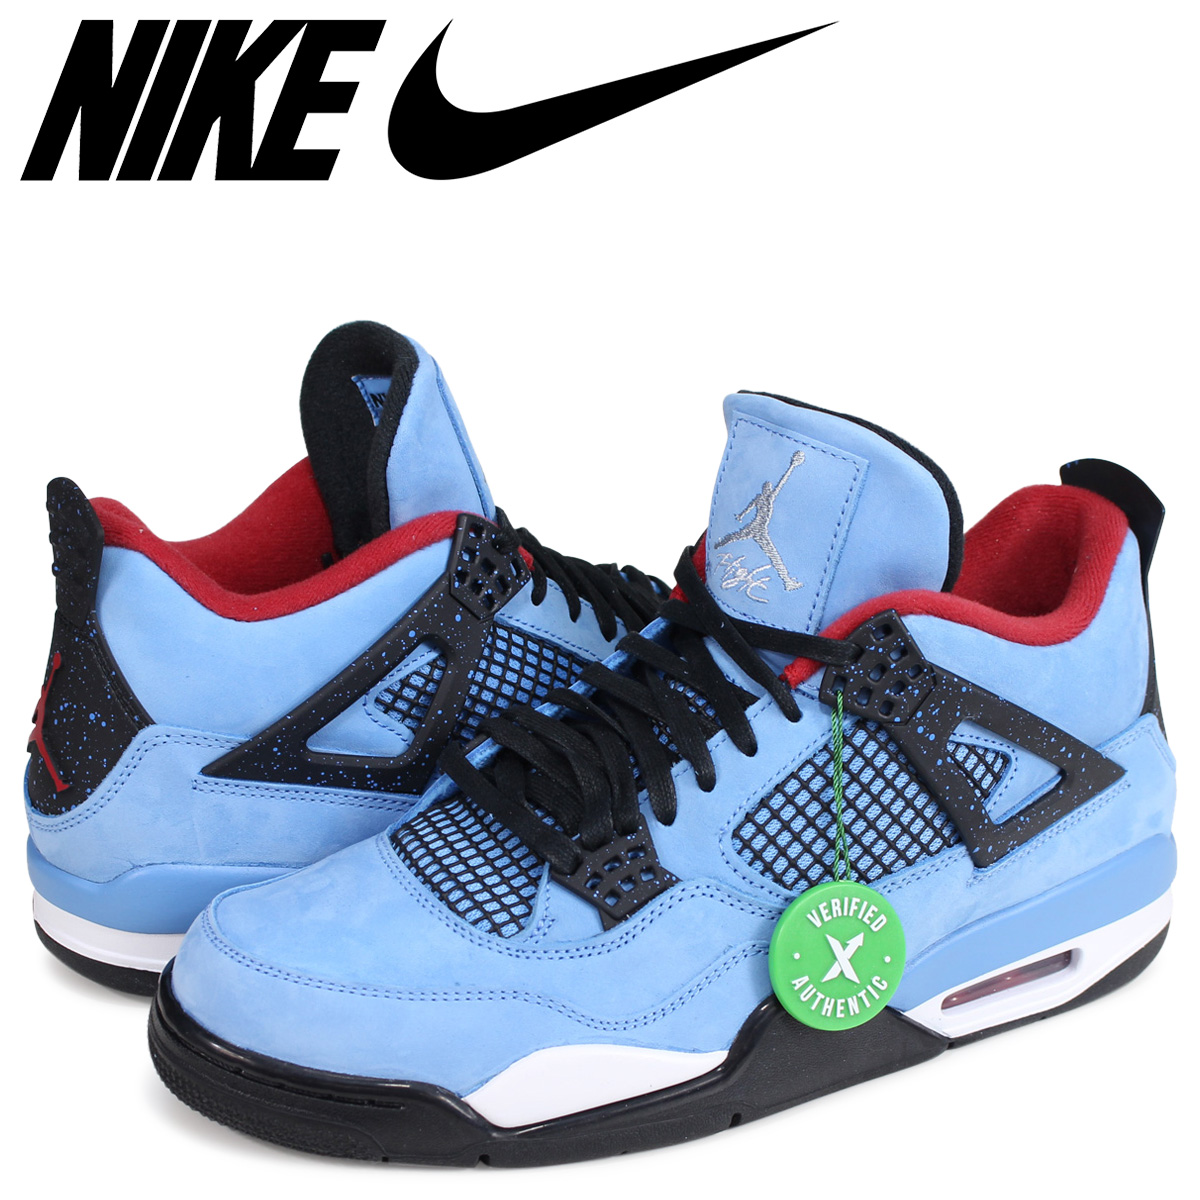 hot sale online 20286 dbe9f NIKE AIR JORDAN 4 RETRO TRAVIS SCOTT Nike Air Jordan 4 sneakers 308,497-406  blue [187]